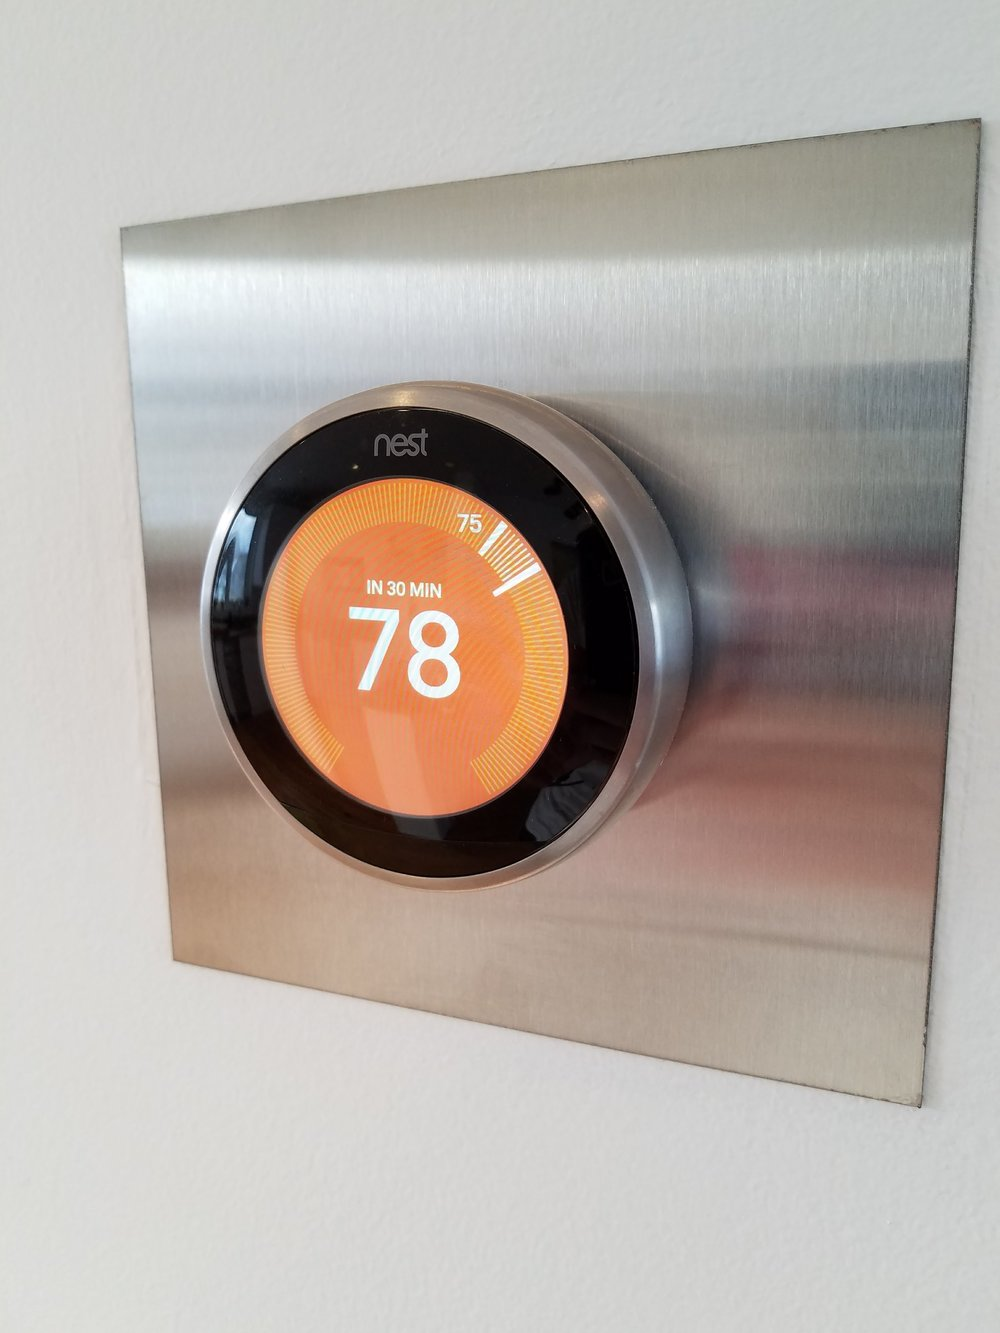 Nest & Tavel - Does the nest thermostat work well for people who travel?